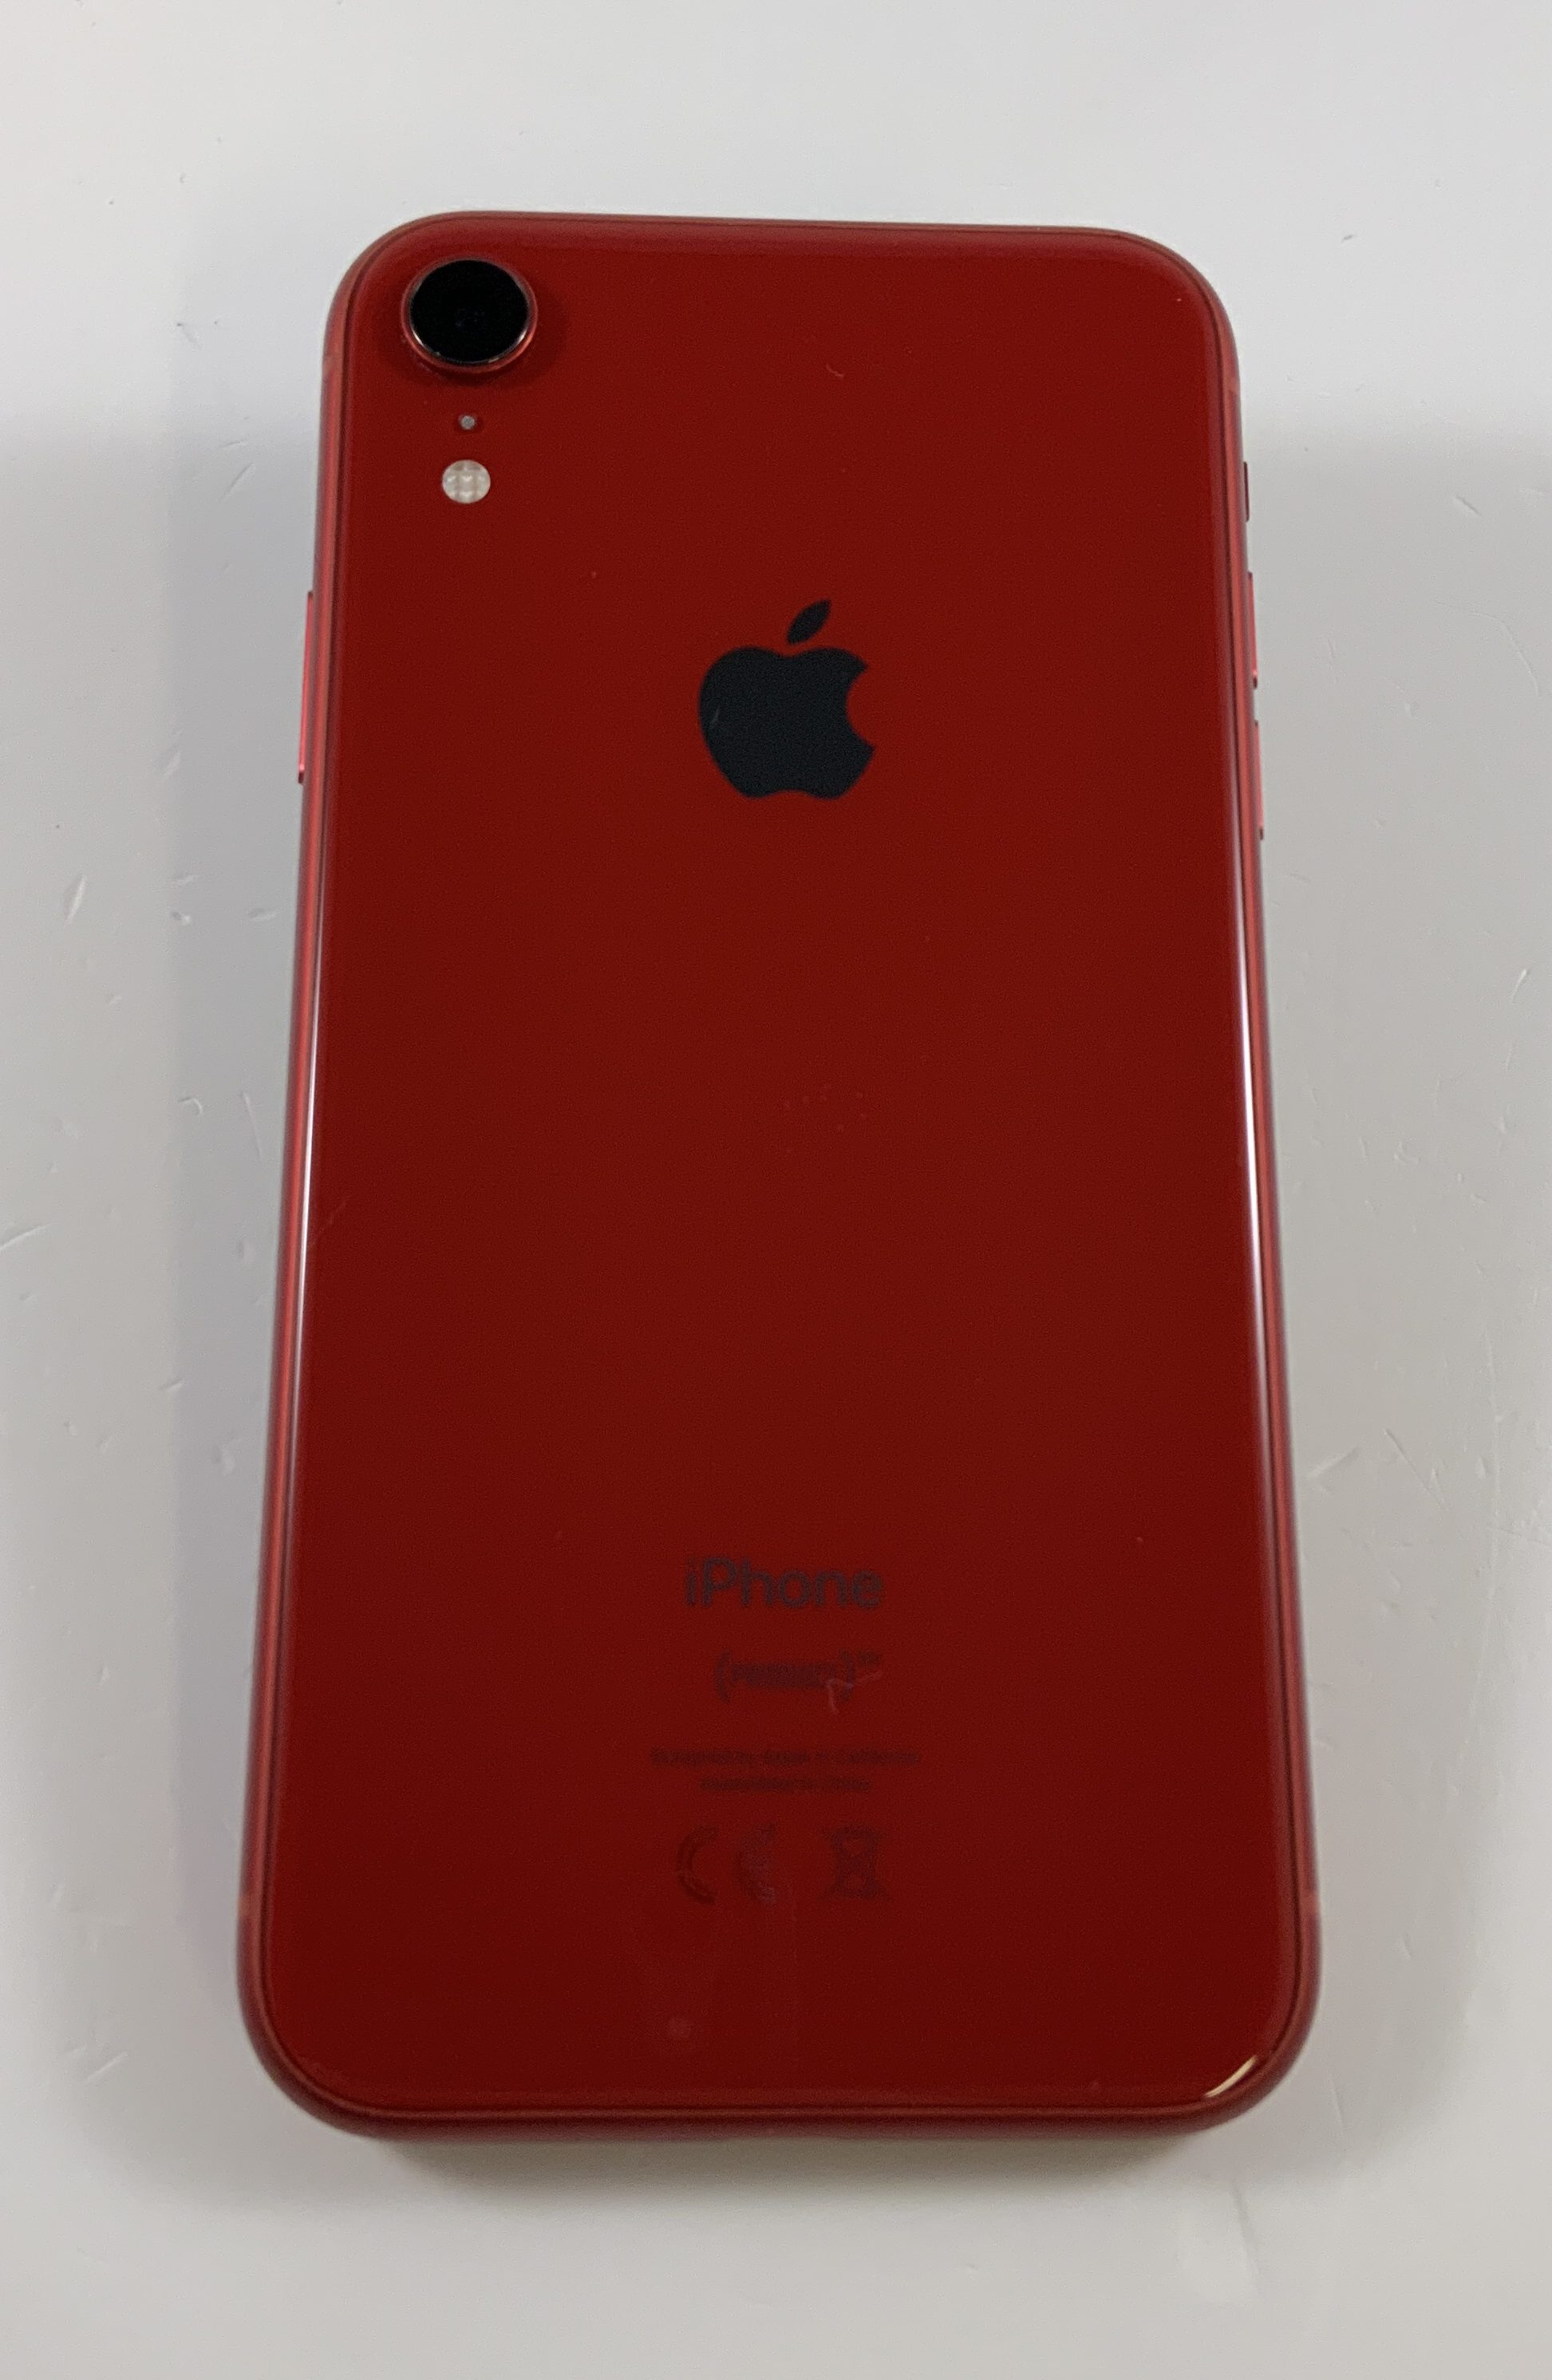 iPhone XR 64GB, 64GB, Red, immagine 2